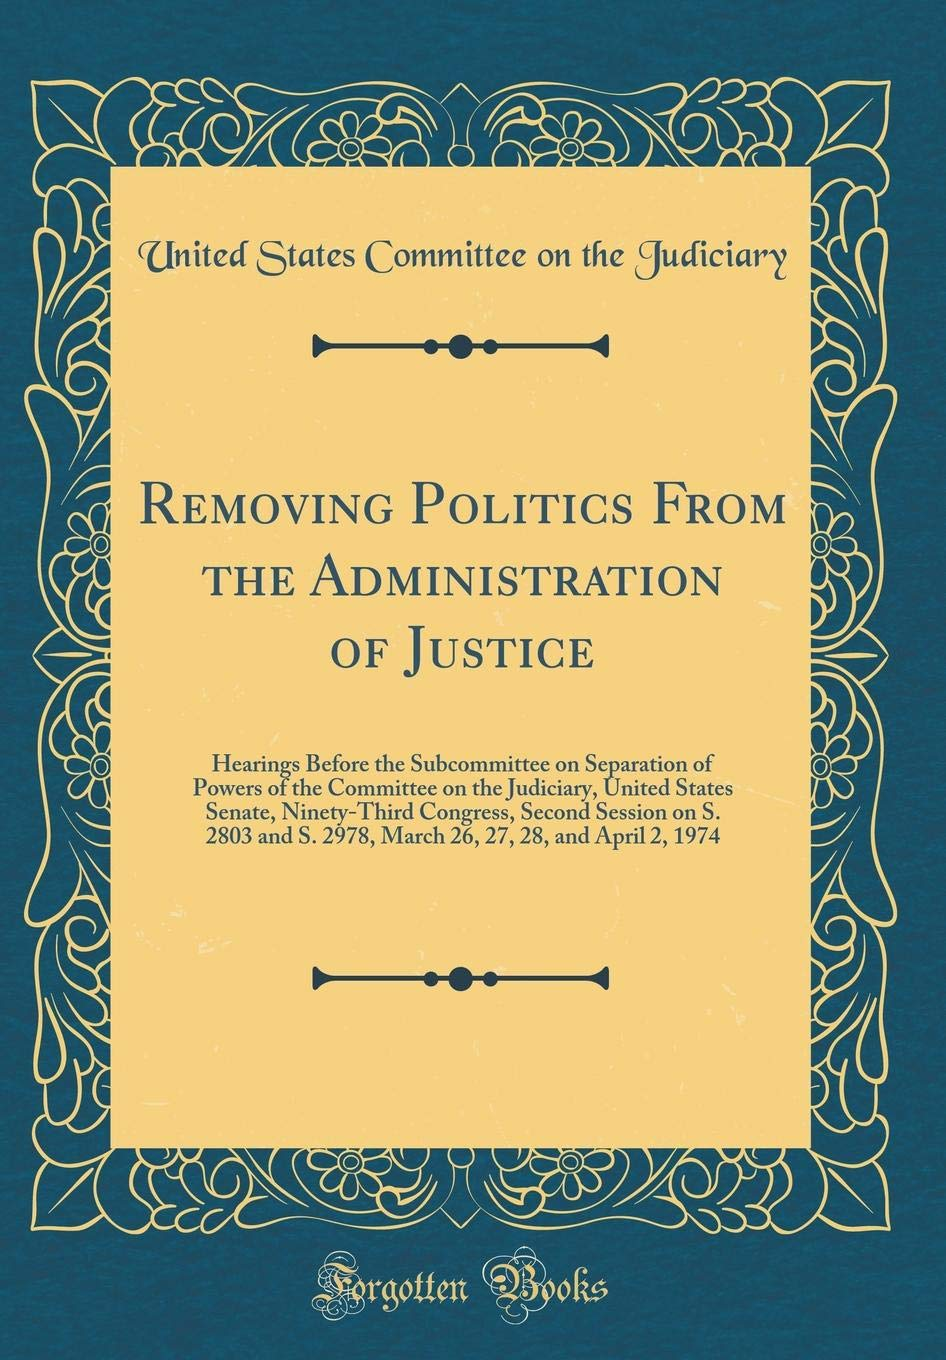 Download Removing Politics From the Administration of Justice: Hearings Before the Subcommittee on Separation of Powers of the Committee on the Judiciary, ... 2803 and S. 2978, March 26, 27, 28, and Apr PDF